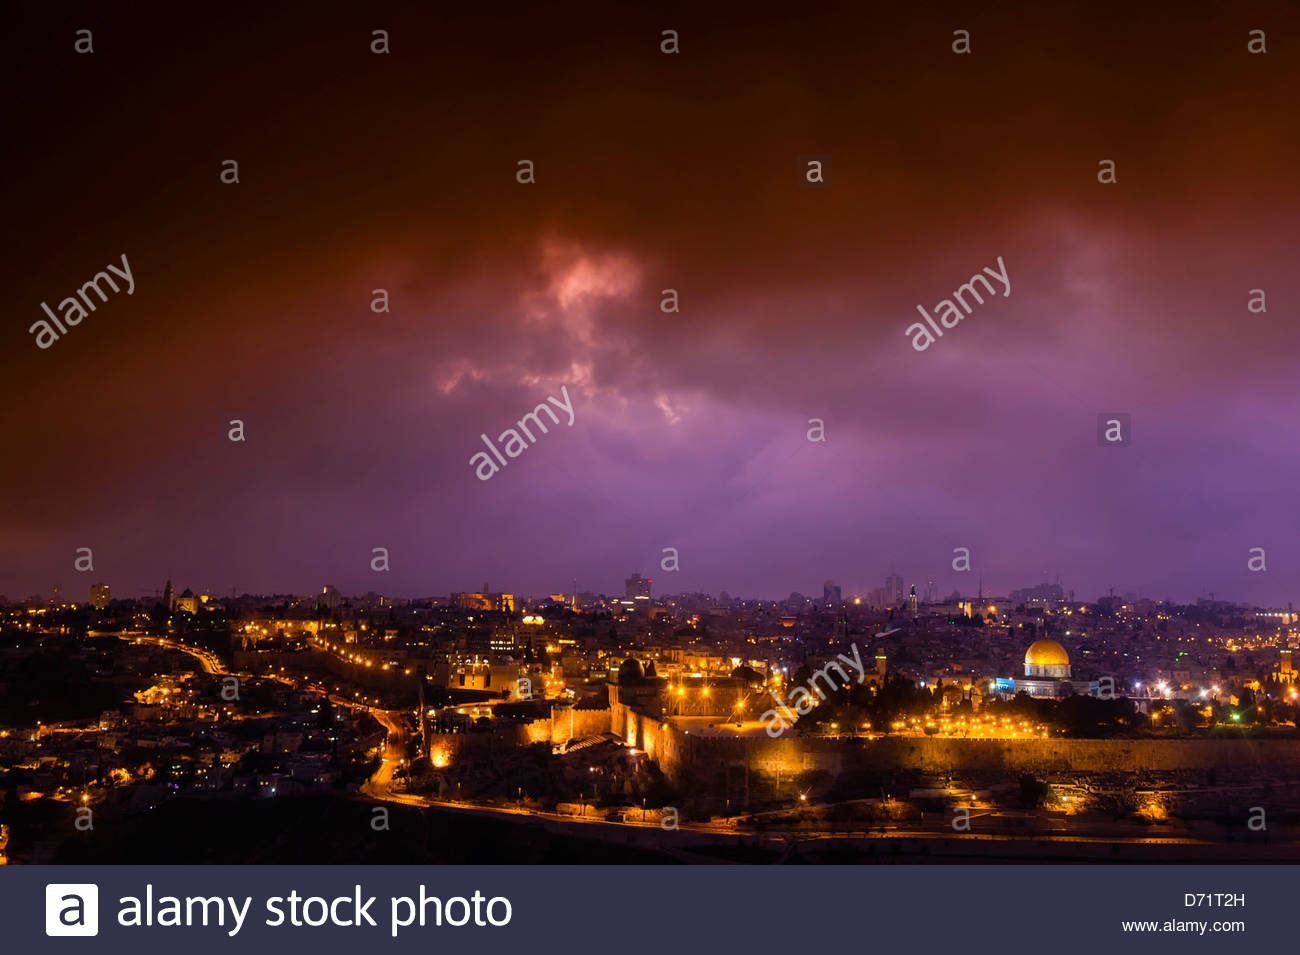 The Temple Mount at twilight, with Al-Aqsa Mosque (Third place in sanctity in the Muslim World after Mecca and Medina) - Stock Image